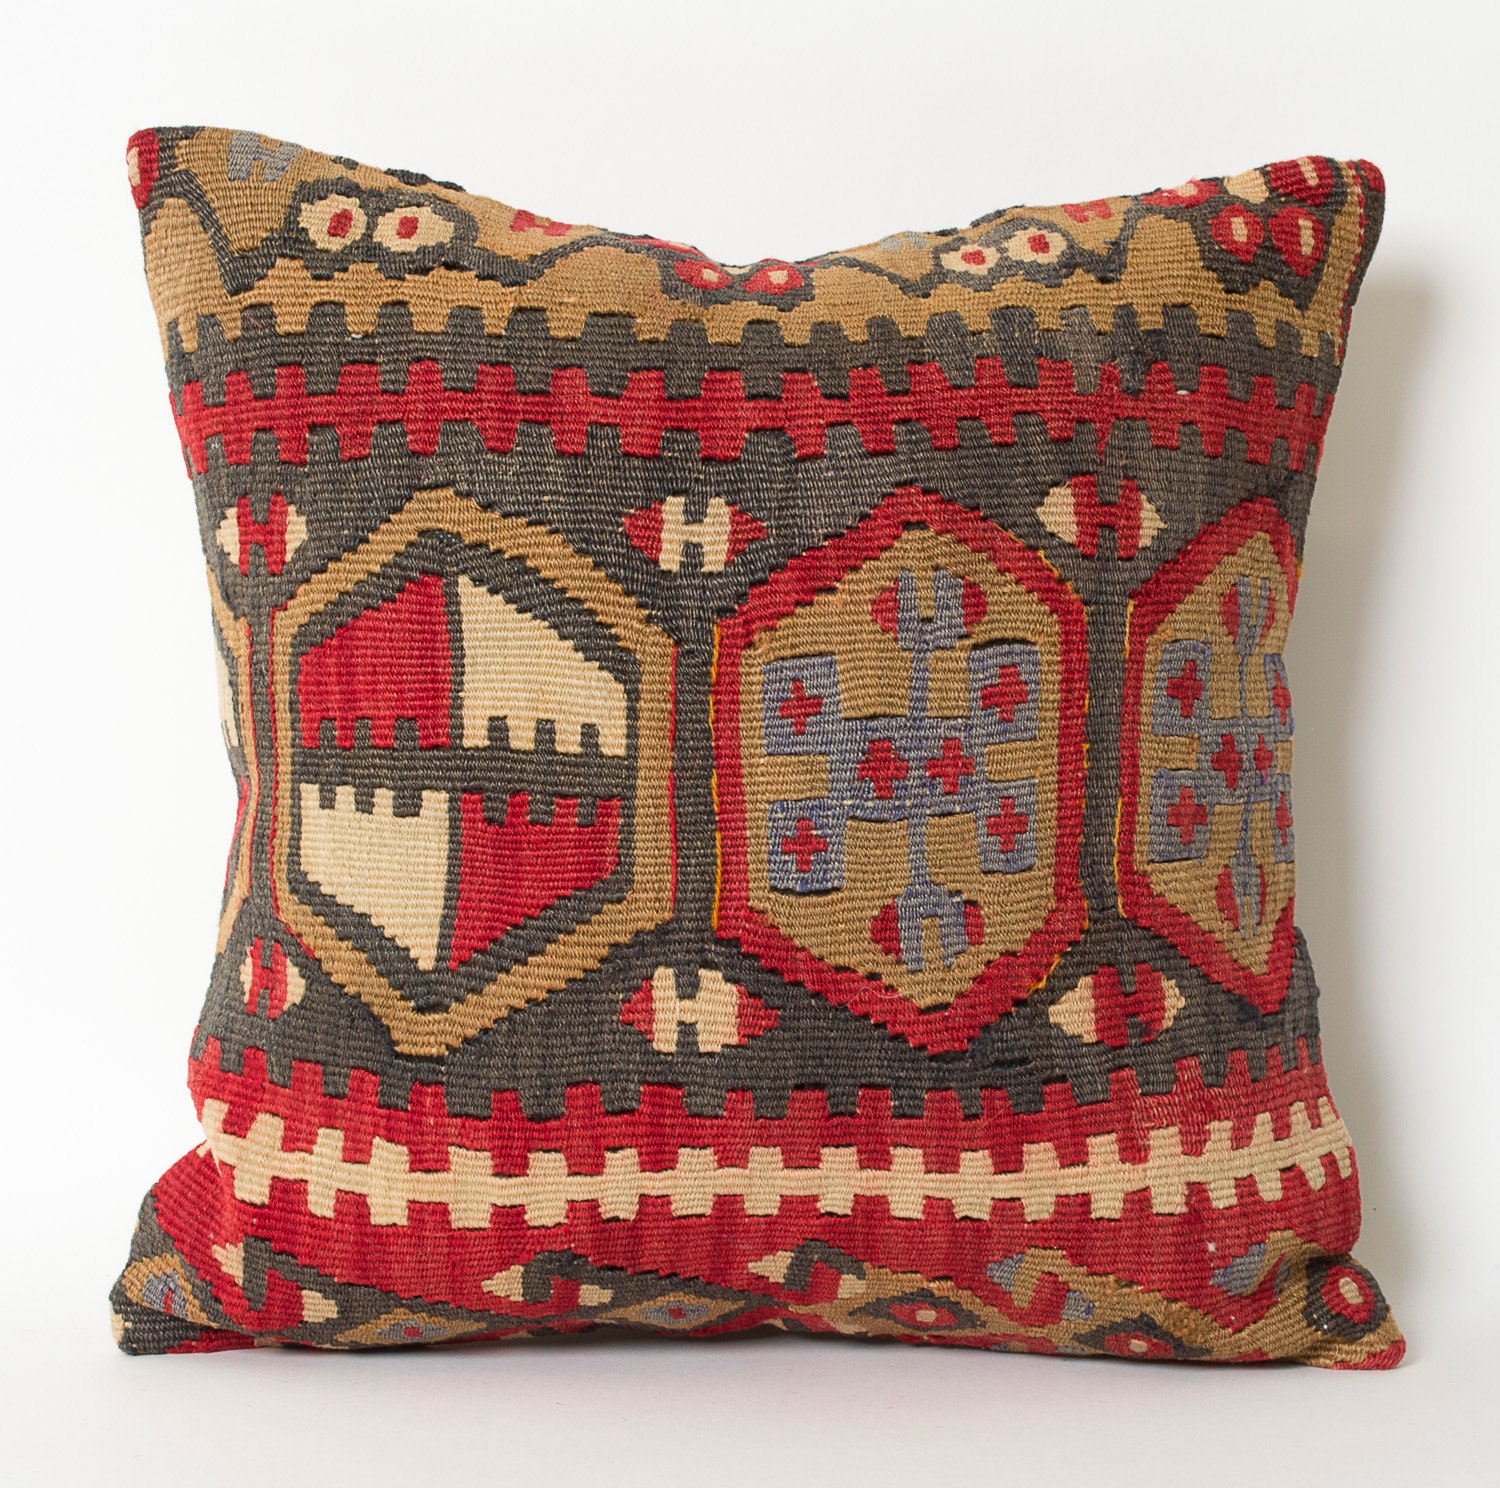 Turkish Kilim Throw Pillows : turkish pillow kilim pillow pillow decorative pillow throw